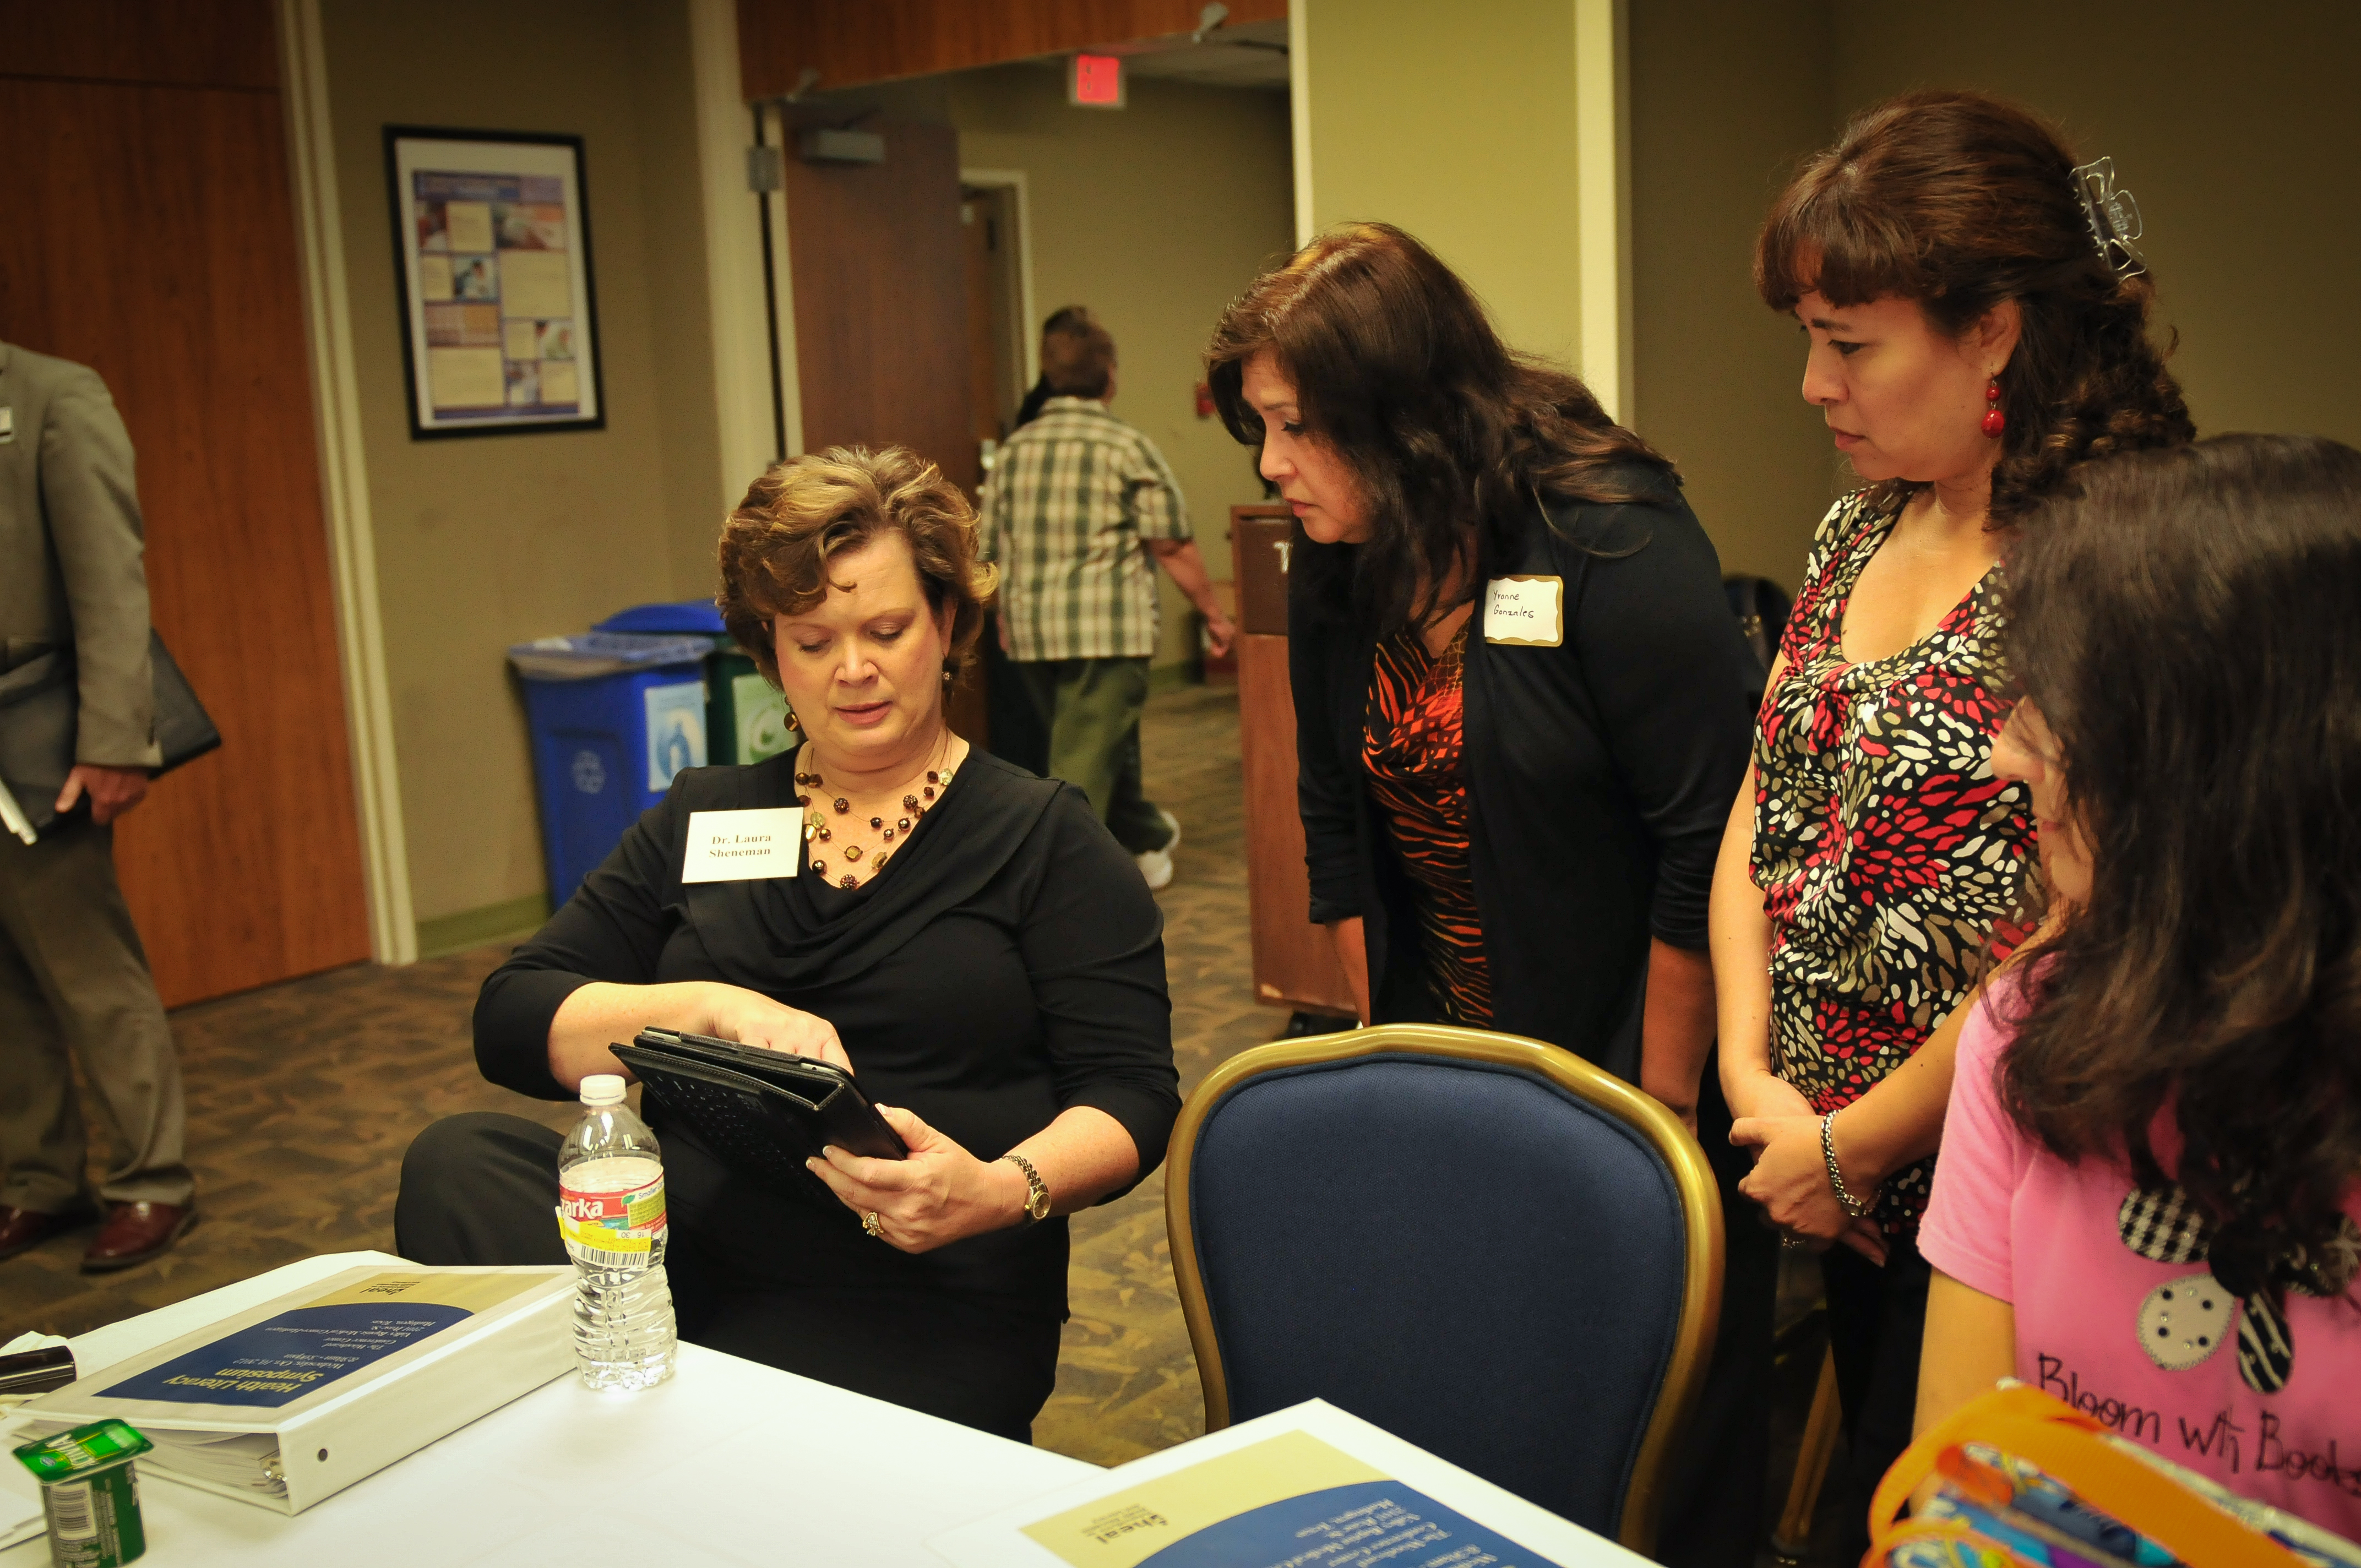 HCISD and Valley Baptist Medical Center partner to host Health Literacy Symposium